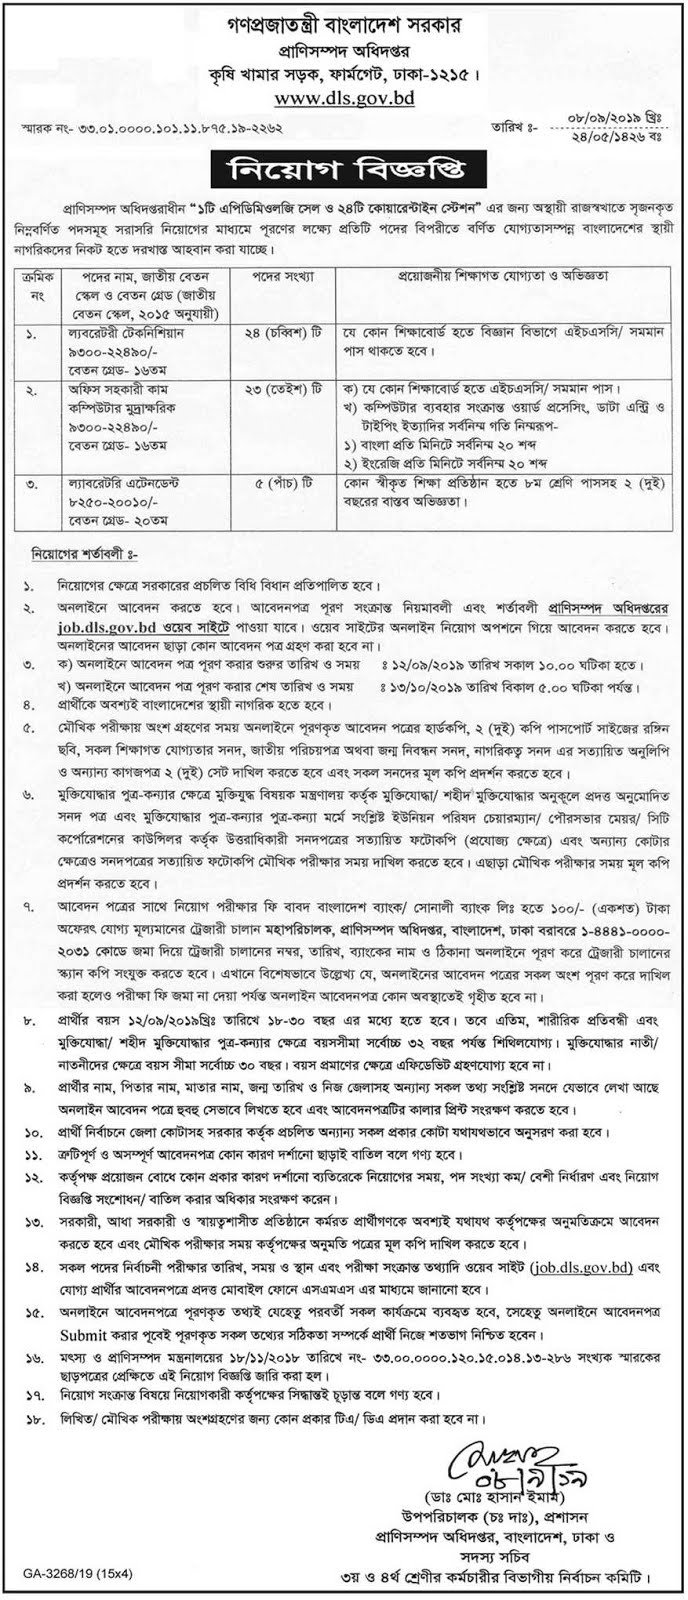 Bangladesh Power Development Board Job Circular 2019